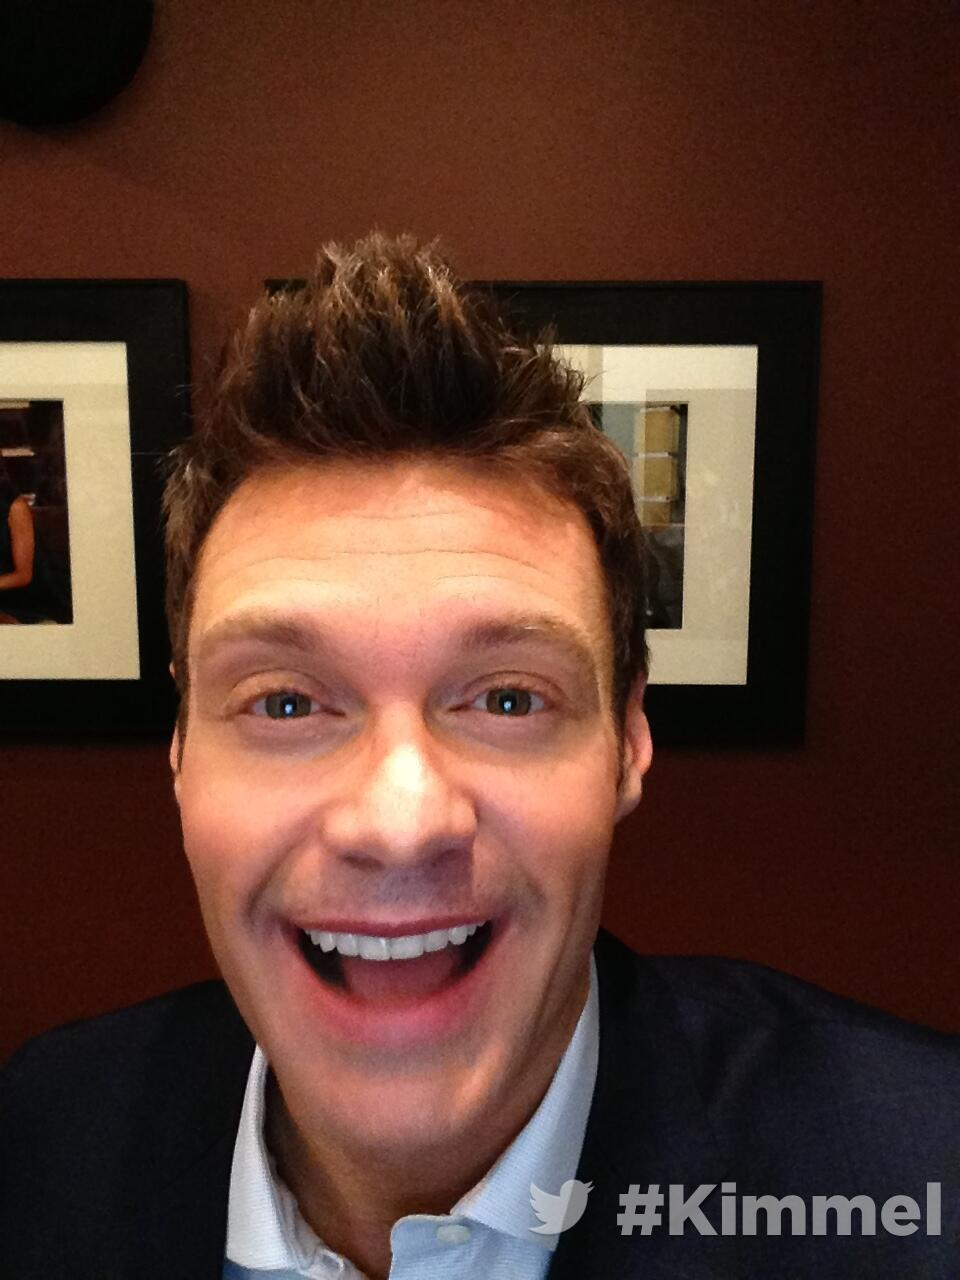 RT @JimmyKimmelLive: Backstage at #Kimmel Tune in tonight 11:35/10:35c on ABC  with @RyanSeacrest http://t.co/UVQCTmU8XD